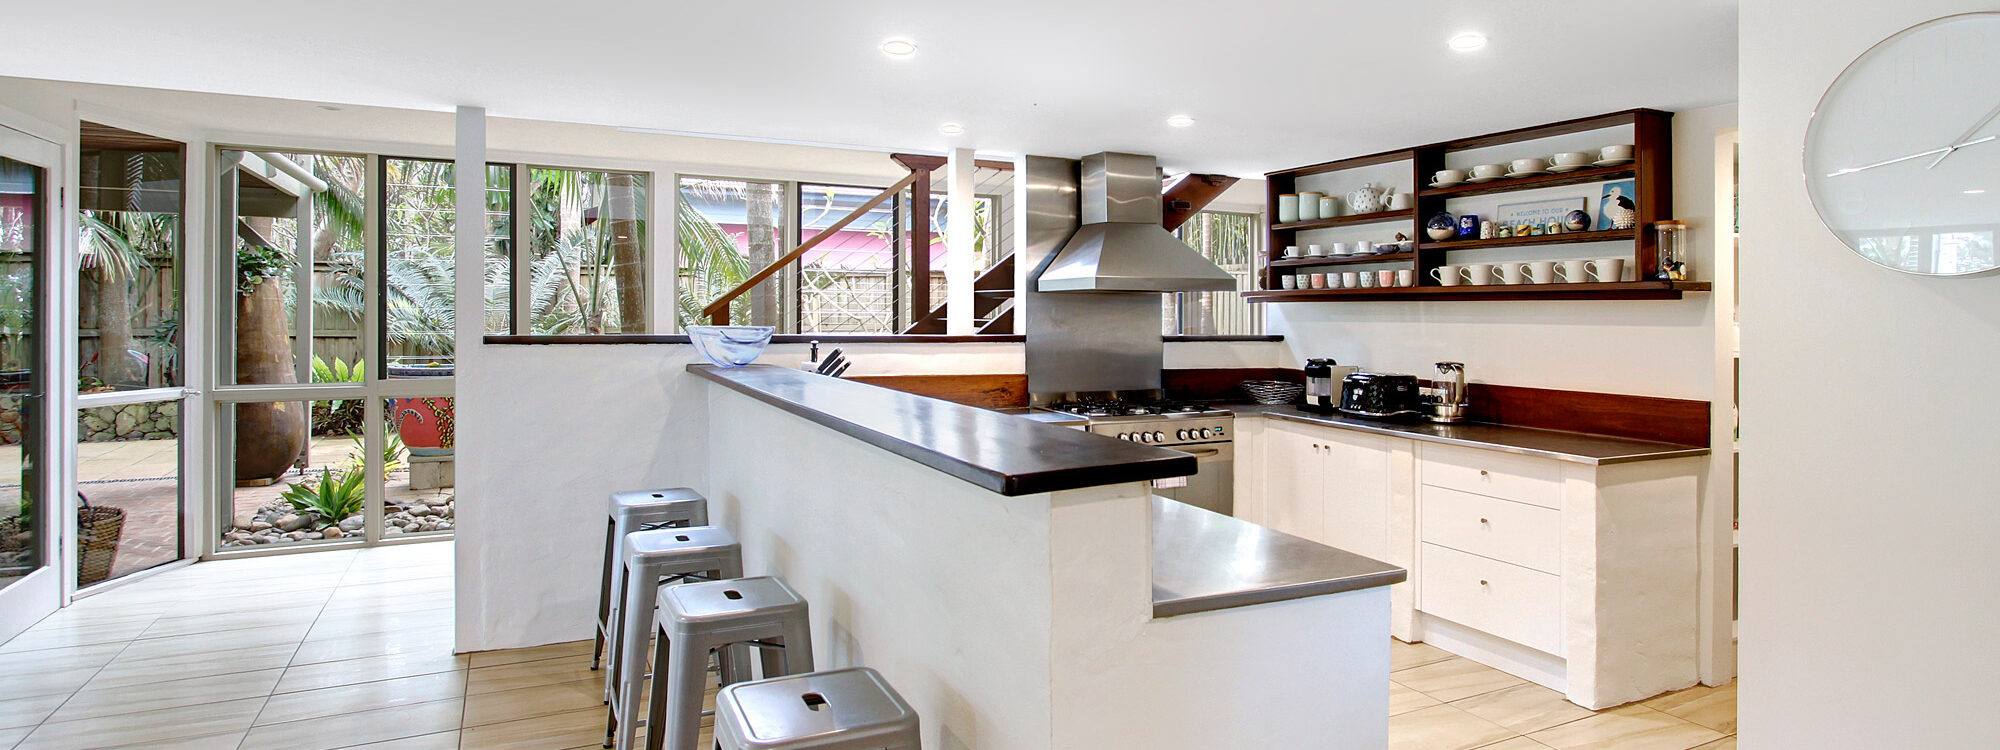 Jimmy's Beach House - Kitchen